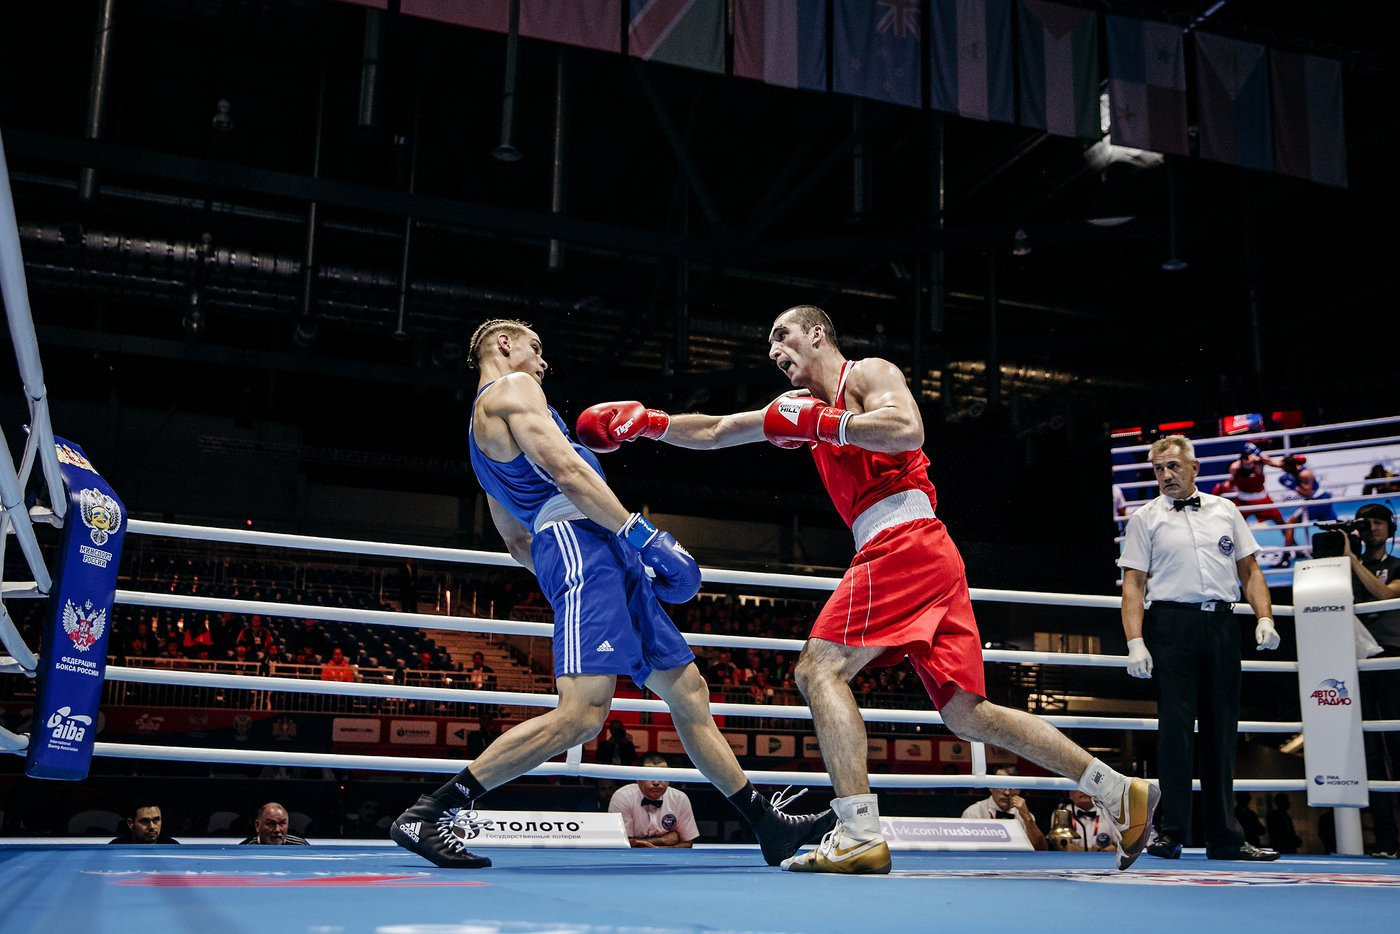 European champion Muslim Gadzhimagomedov reached the heavyweight quarter-final at the AIBA World Championships ©Yekaterinburg 2019